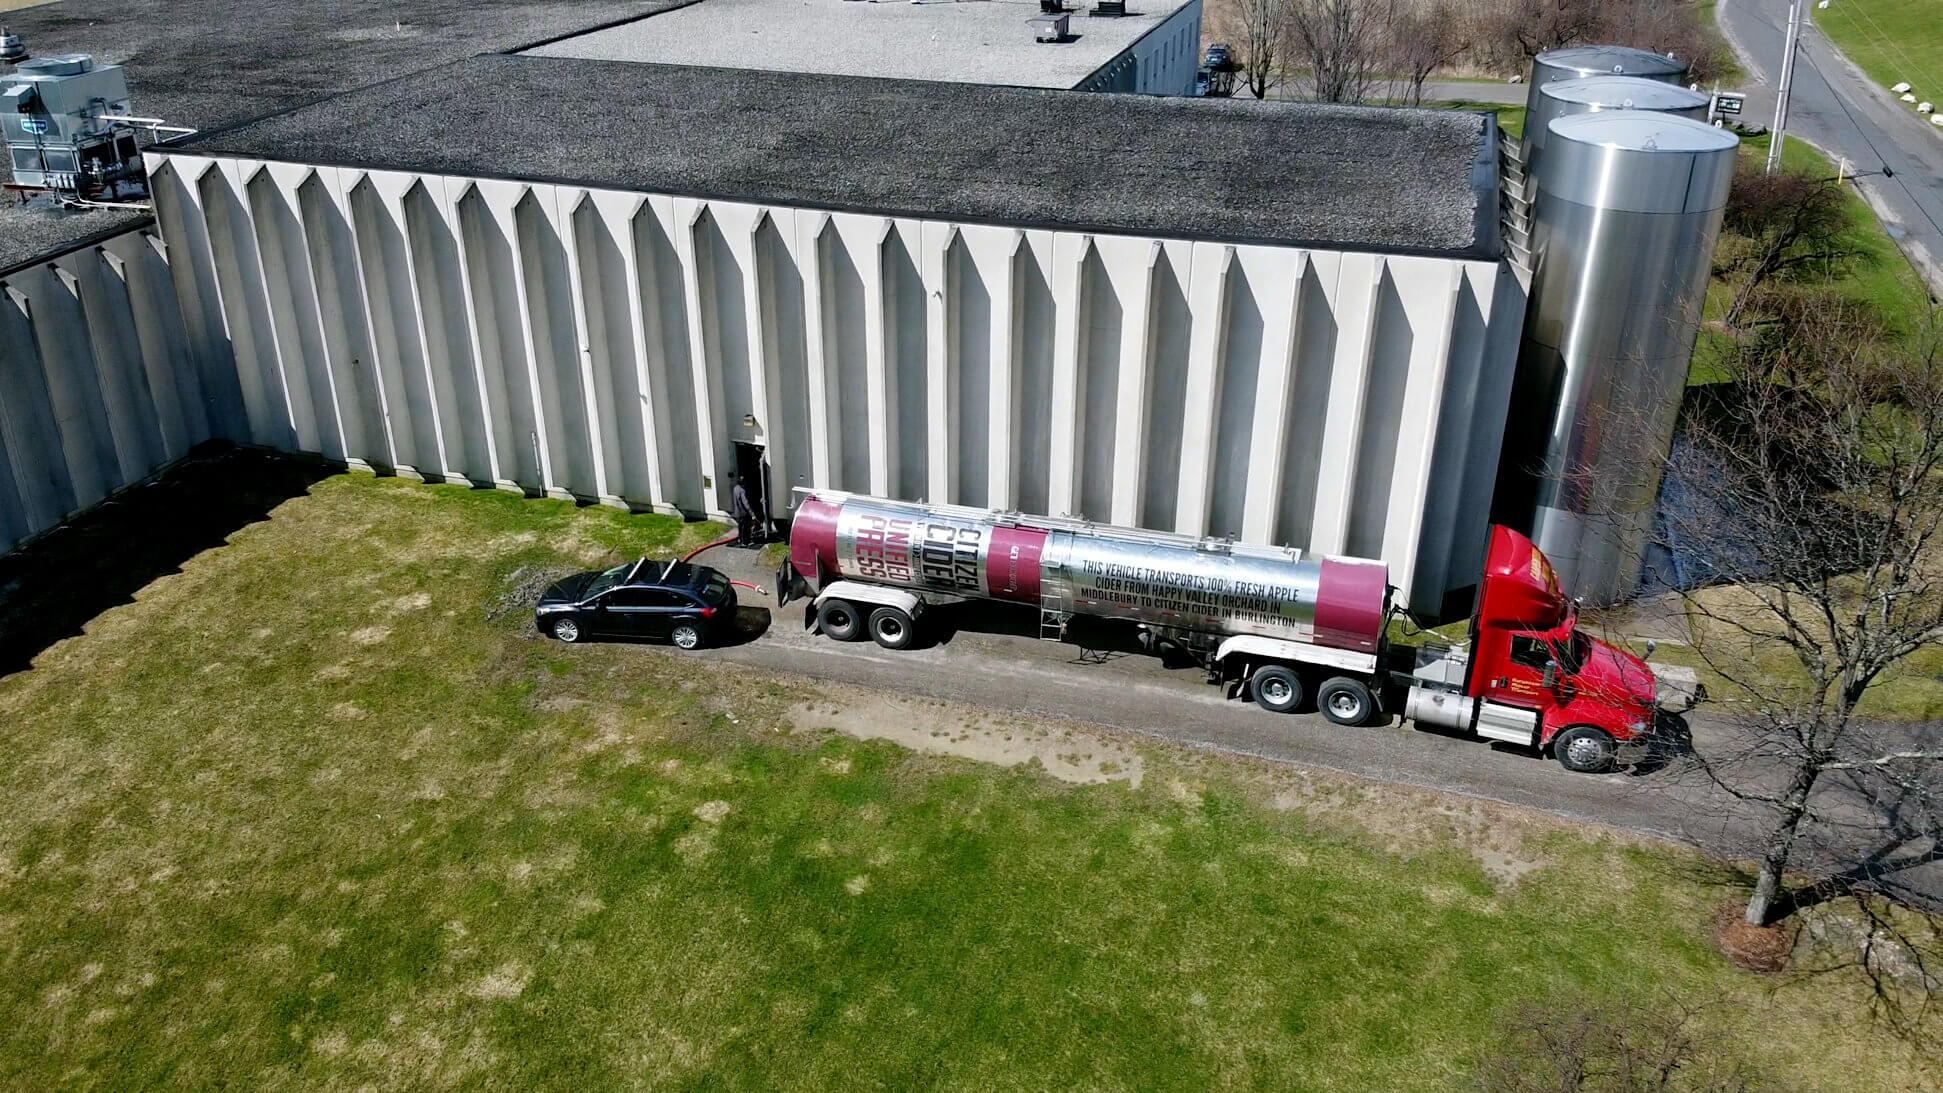 Draft beer is unloaded at Aqua ViTea's facility in Waterbury, Vermont. The beer is put into tall containers, right, and then sent into an alcohol extraction machine.